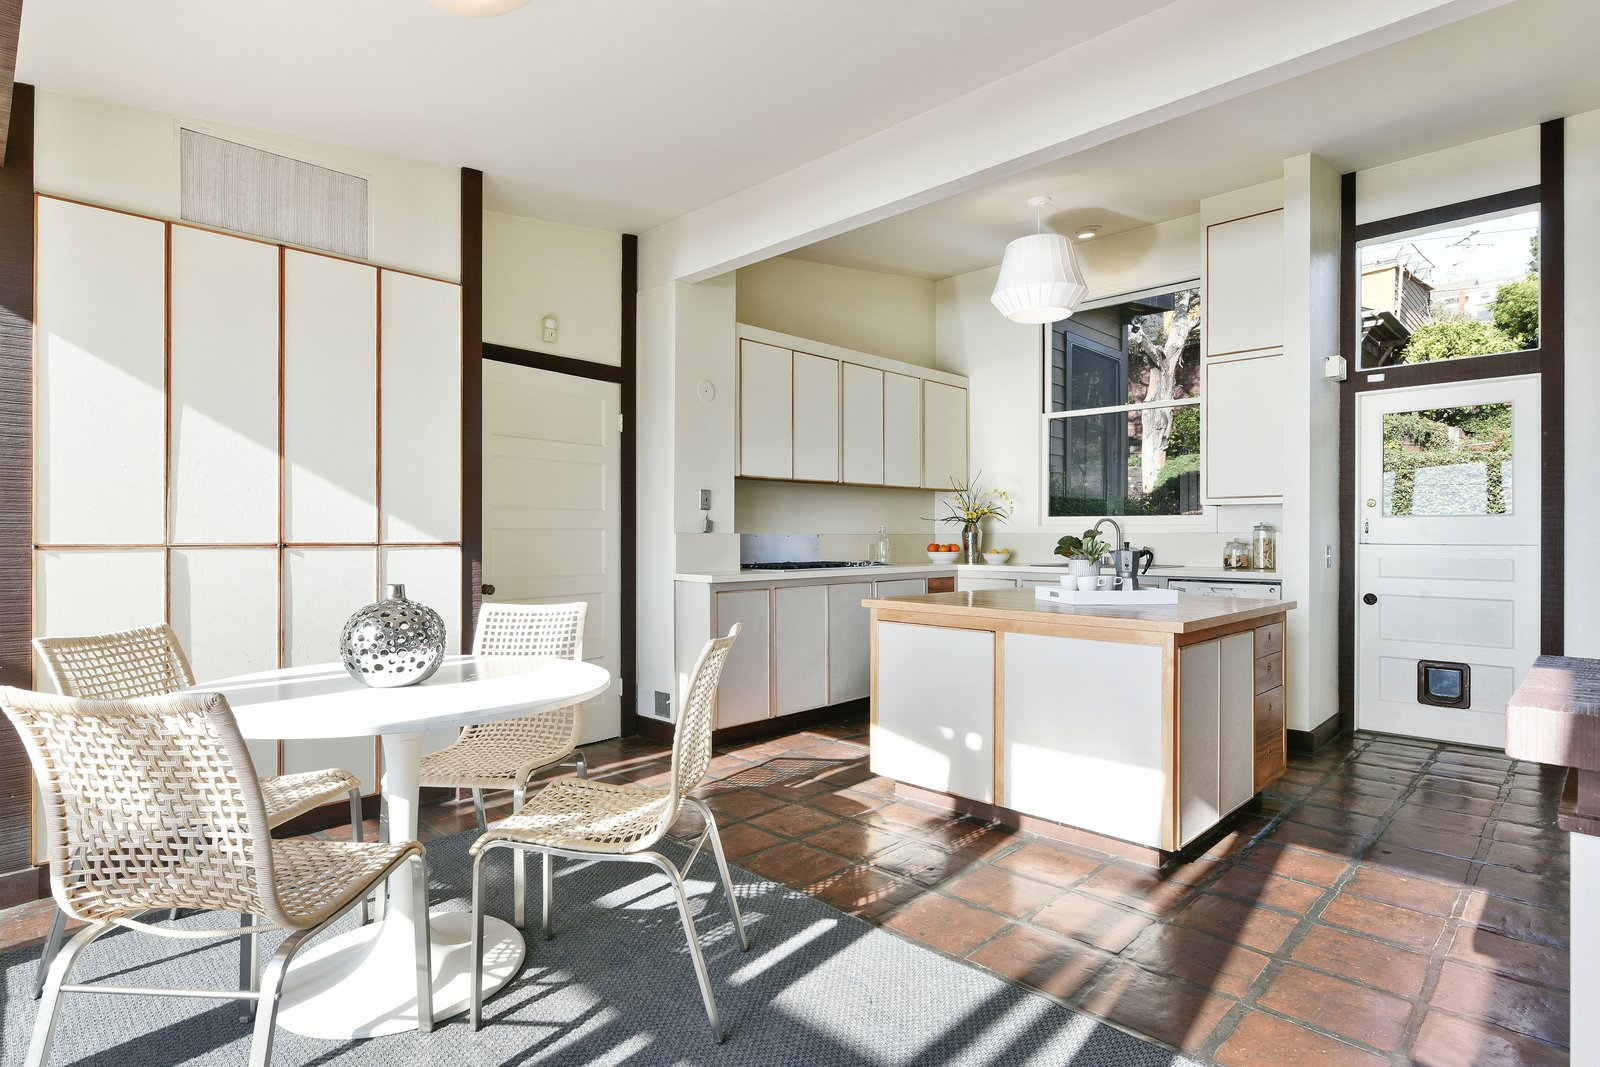 Kitchen, White Cabinet, Wood Cabinet, Pendant Lighting, Terra-cotta Tile Floor, Undermount Sink, Dishwasher, and Ceiling Lighting This kitchen was renovated in the late 1970s and has been beautifully maintained since.    Photo 6 of 14 in A Bay Area Jewel With Golden Gate Views Wants $1.55M